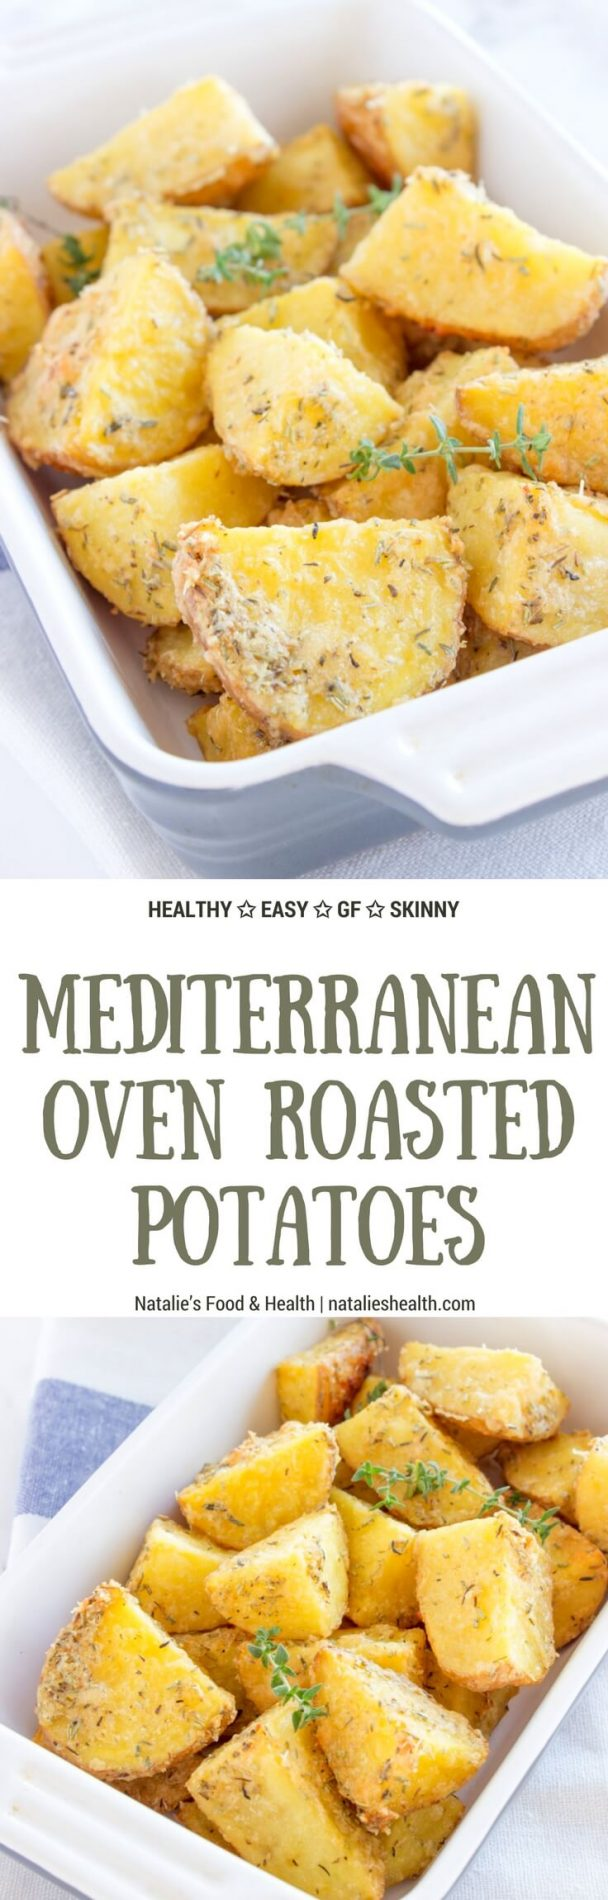 Easy, healthy and delicious, roasted garlic parmesan potatoes baked in the oven seasoned with aromatic spices. It's perfect low-calorie meal, full of nutrients. #sidedish #veggies #kidsfriendly #baked #fall #winter #thanksgiving #holiday #family #dinner #easy #parmesan #glutenfree | www.natalieshealth.com